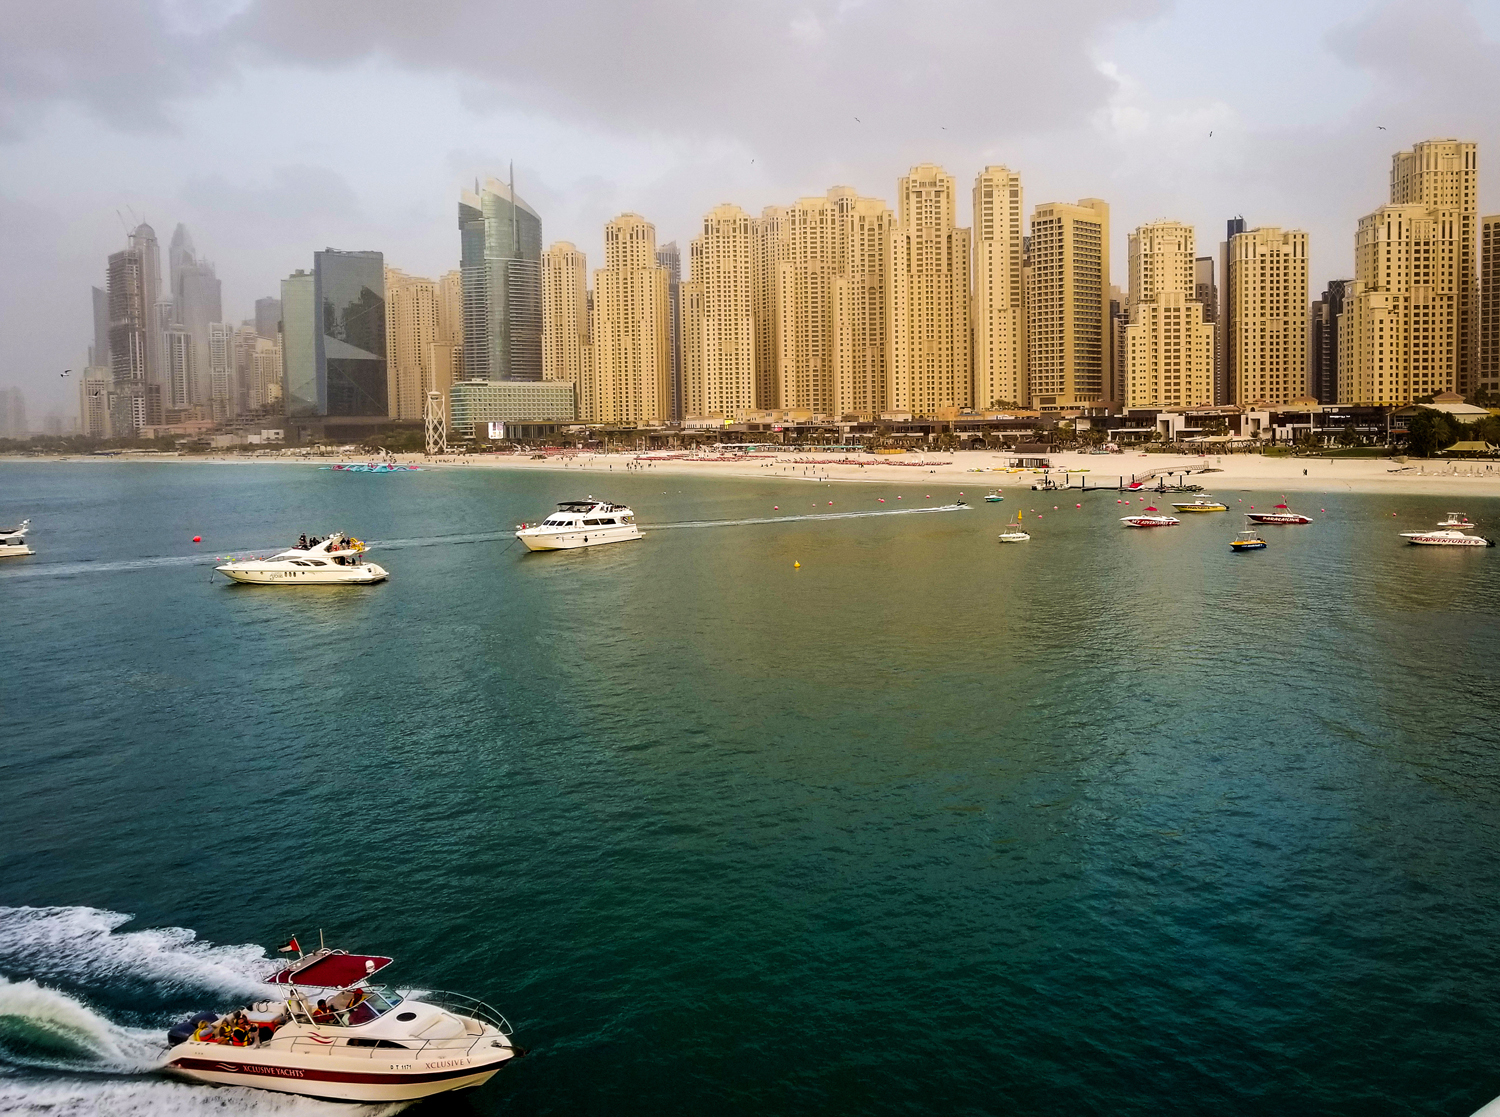 UAE Dubai Blue Waters island Jumeriah Beach  of Dubai Perian Gulf.